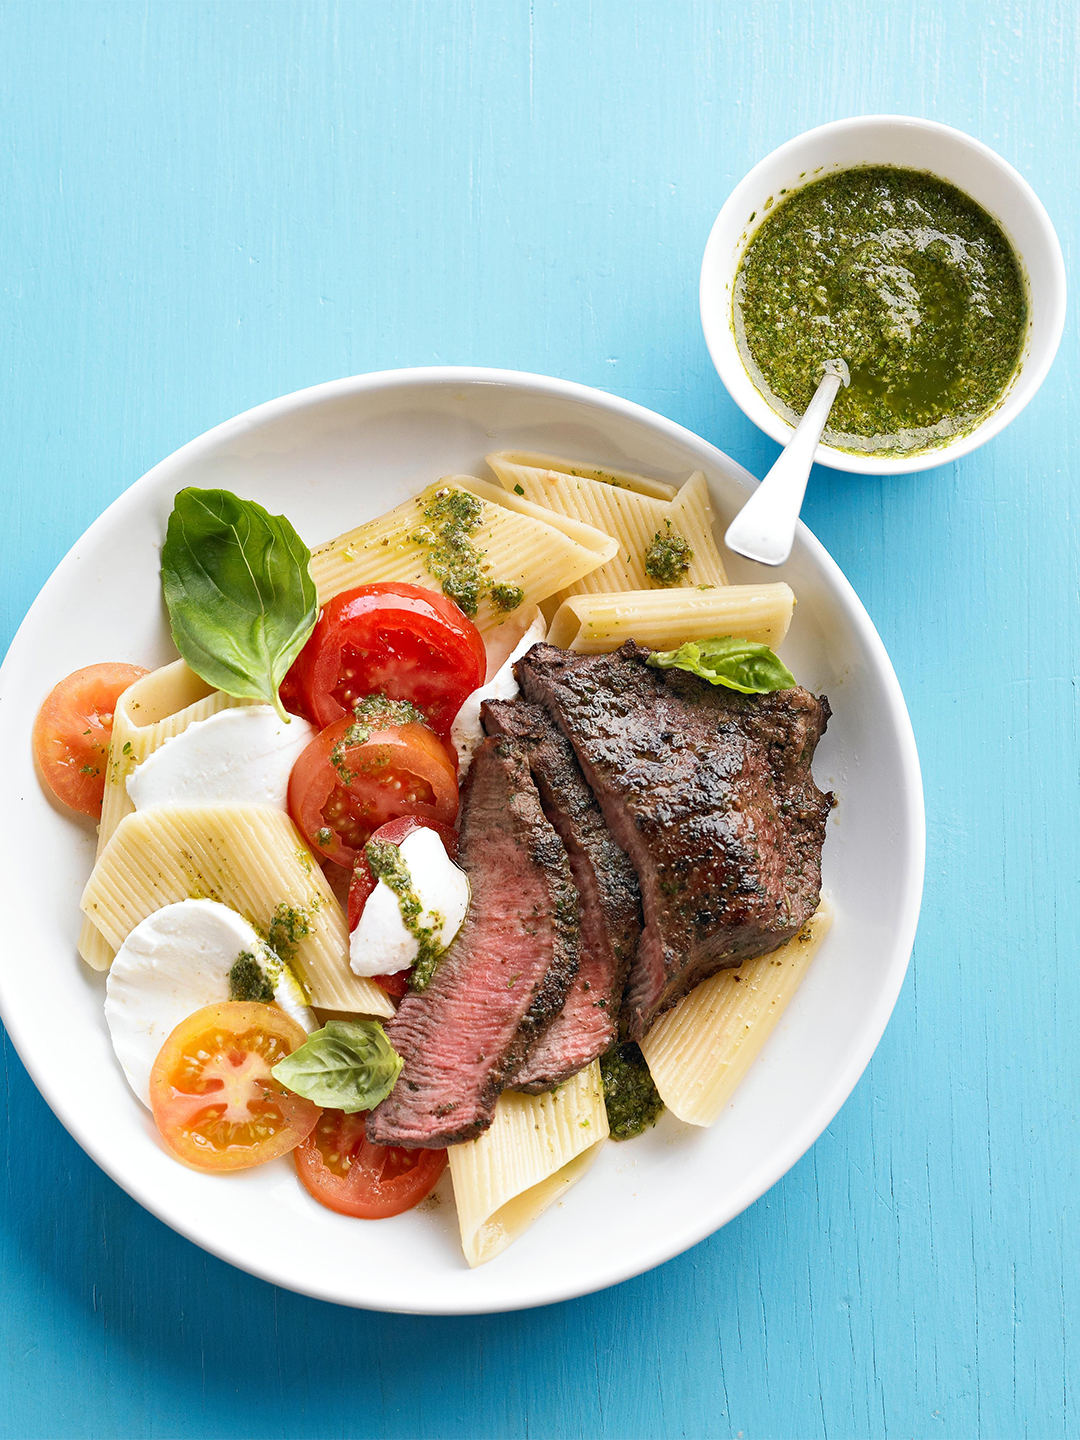 Caprese Pasta and Steak with fresh mozzarella, tomatoes, and pesto sauce